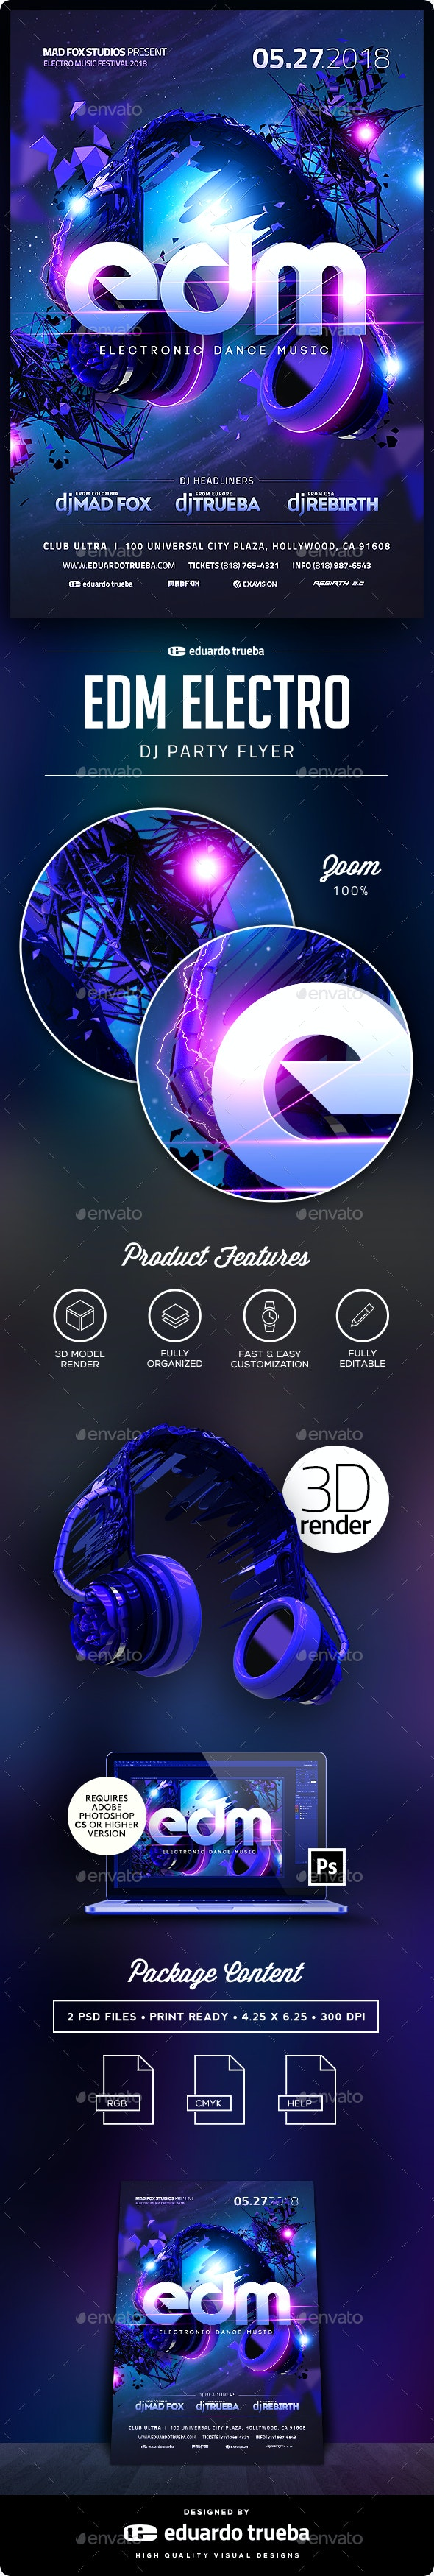 EDM Electro Dj Party Flyer - Clubs & Parties Events